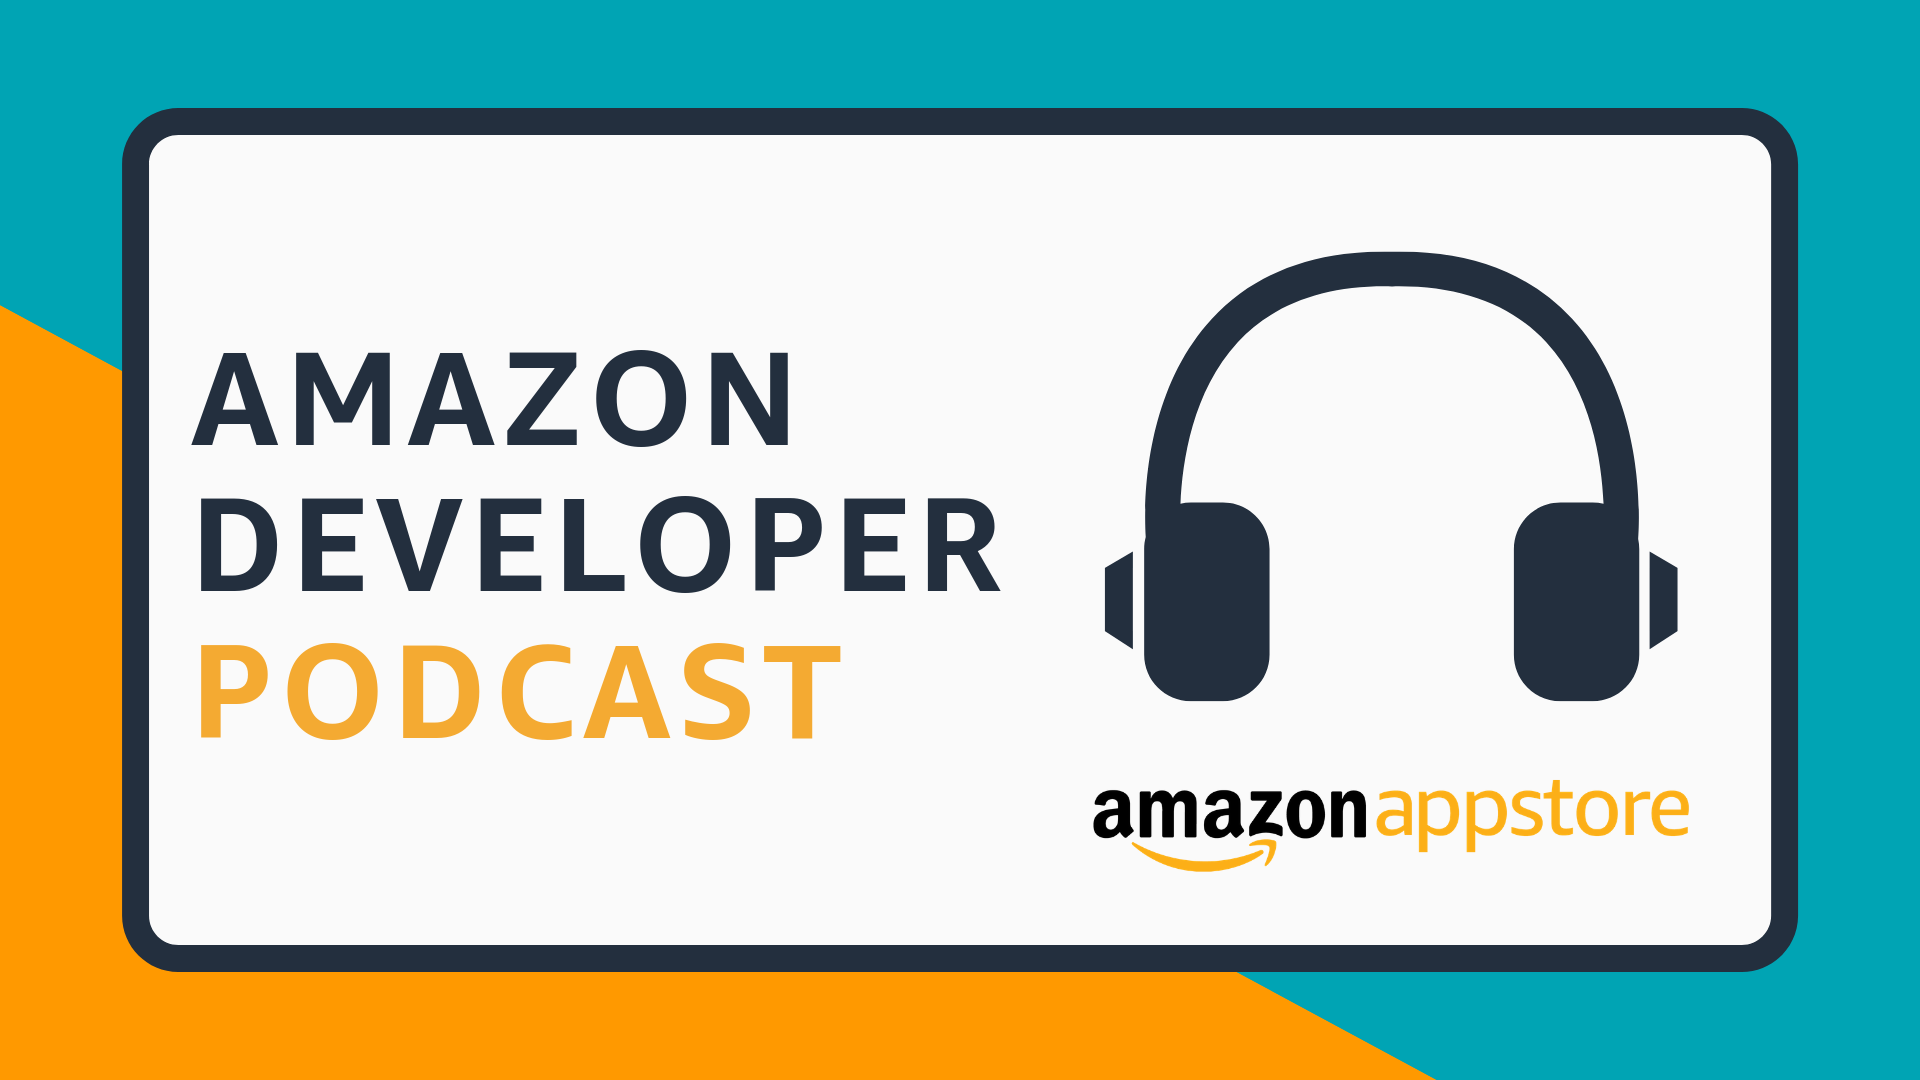 AMAZON_Developer_Podcast.png